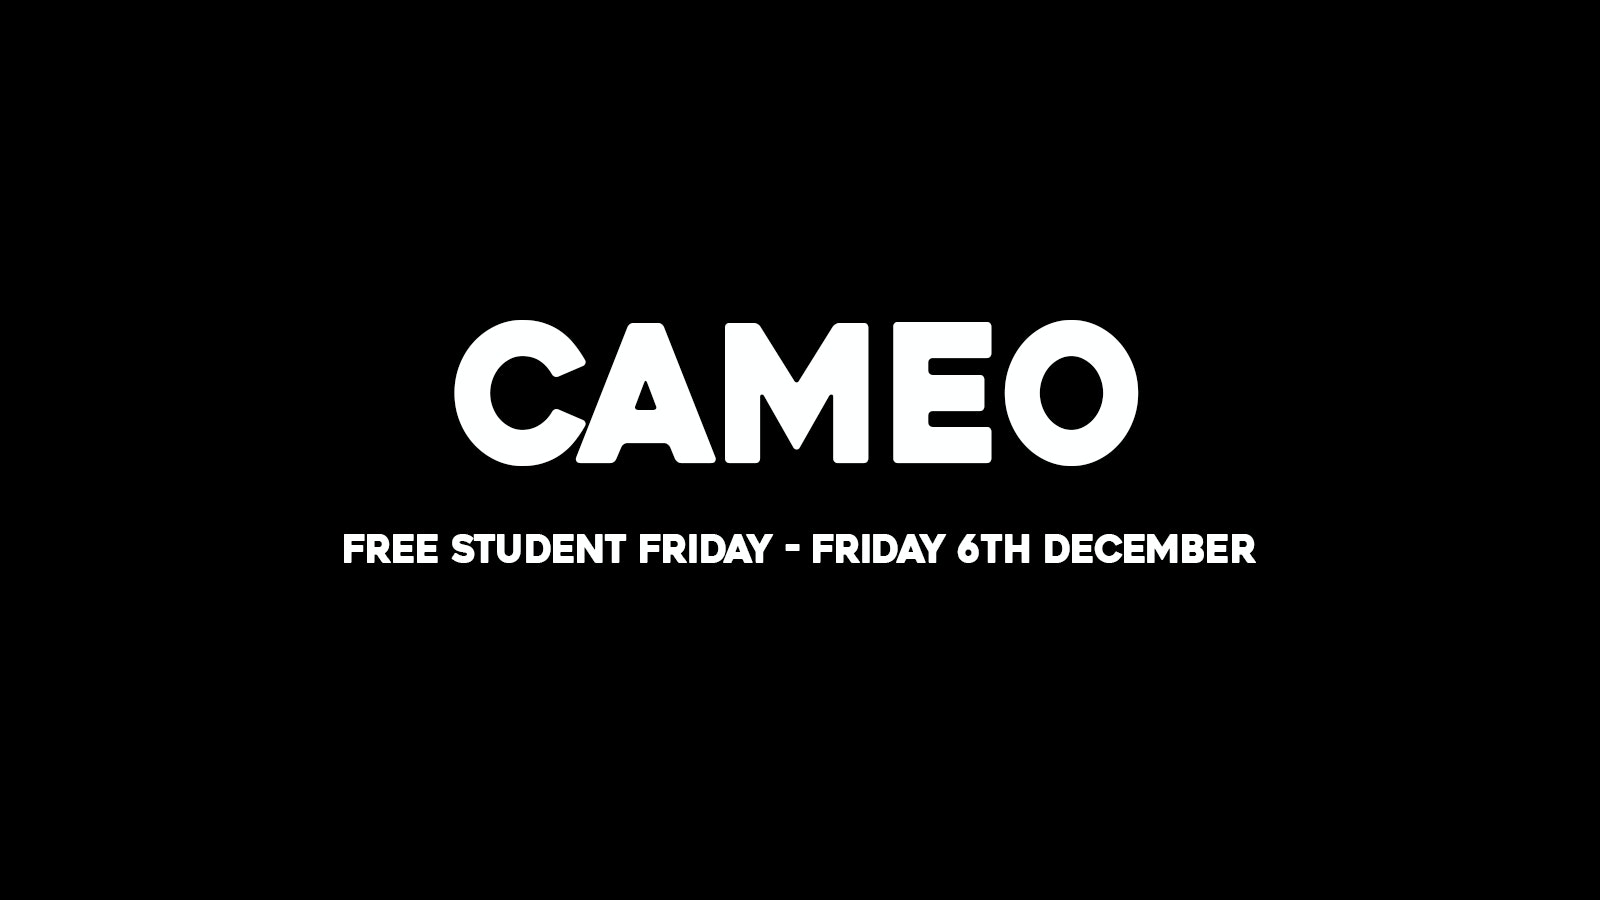 CAMEO STUDENT FRIDAYS – ONE OFF SPECIAL